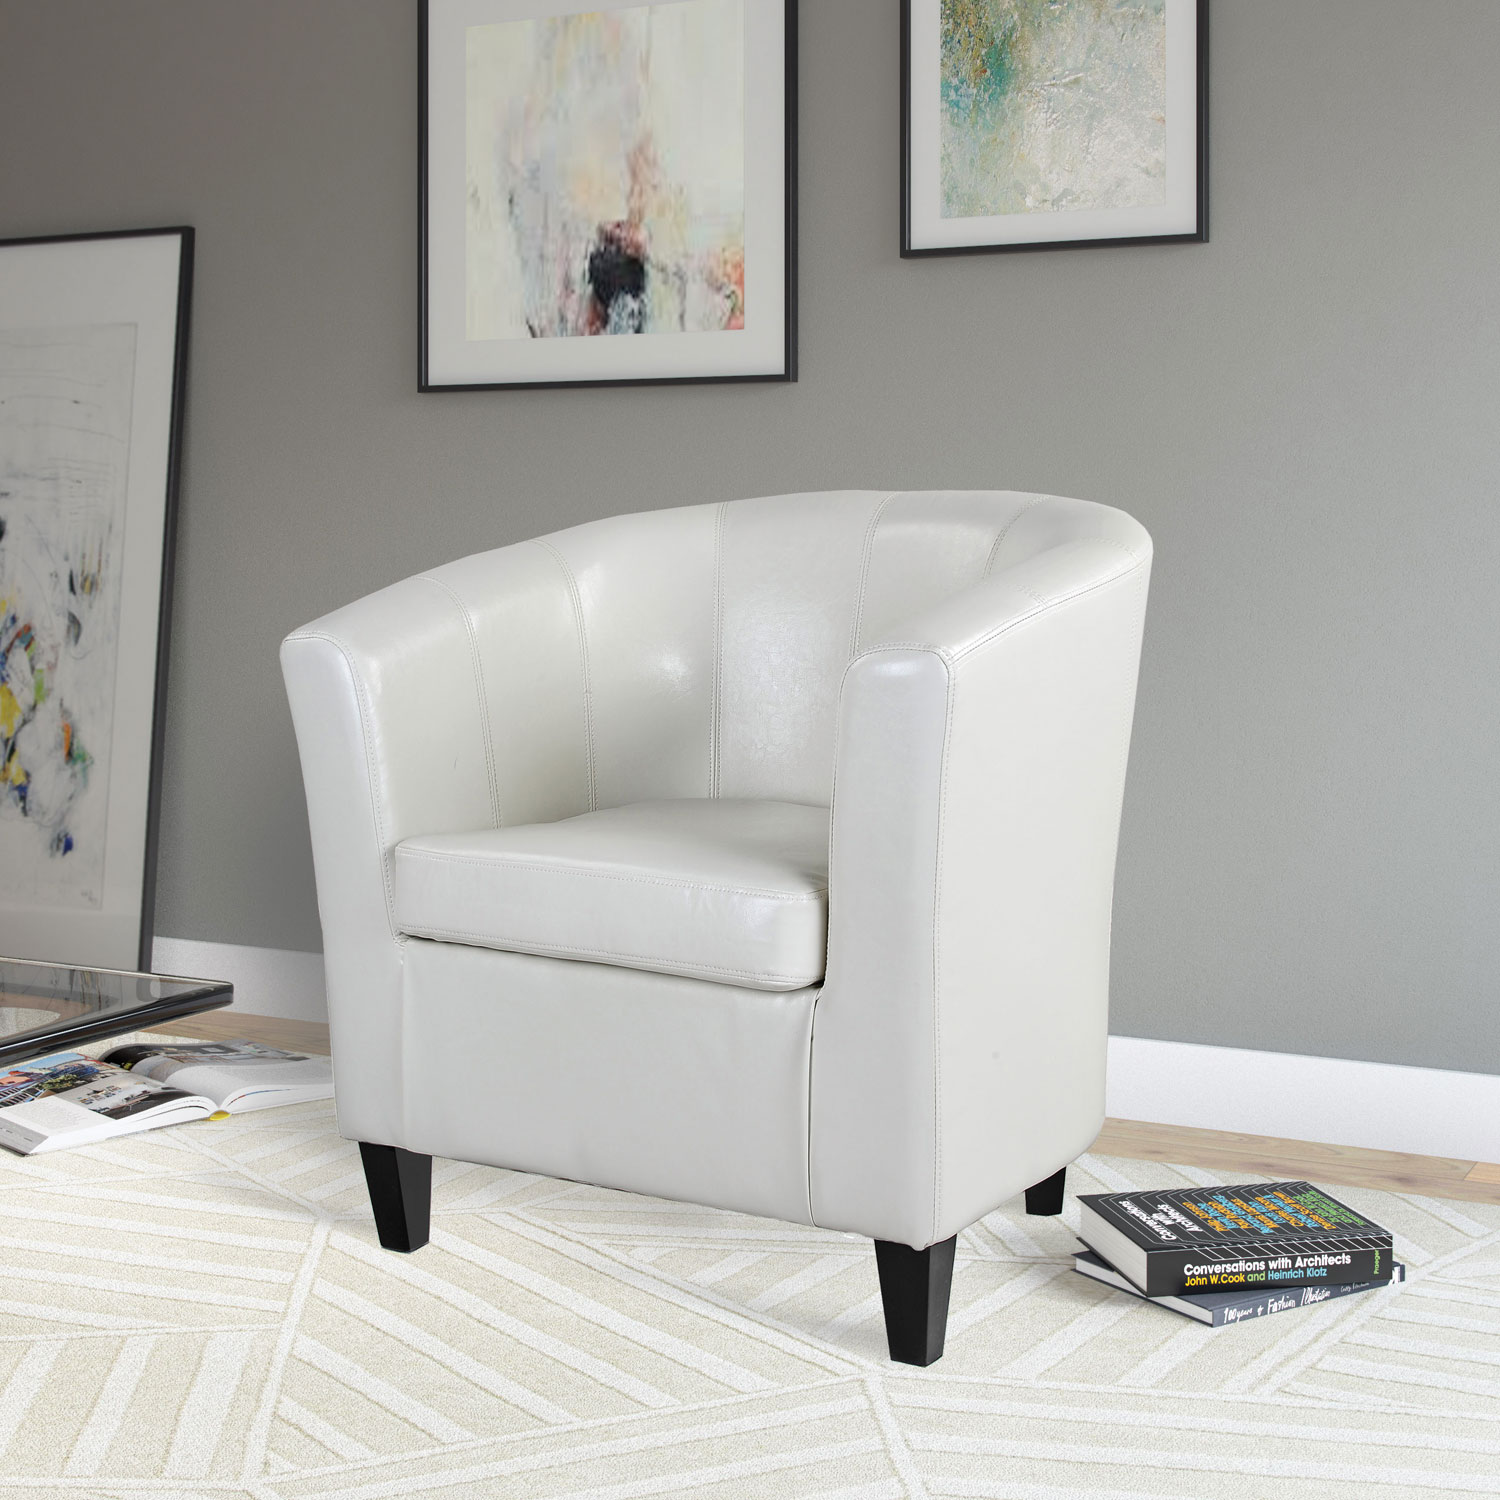 antonio transitional fabric curved back accent chair  cream white  - antonio transitional fabric curved back accent chair  cream white  accentchairs  best buy canada